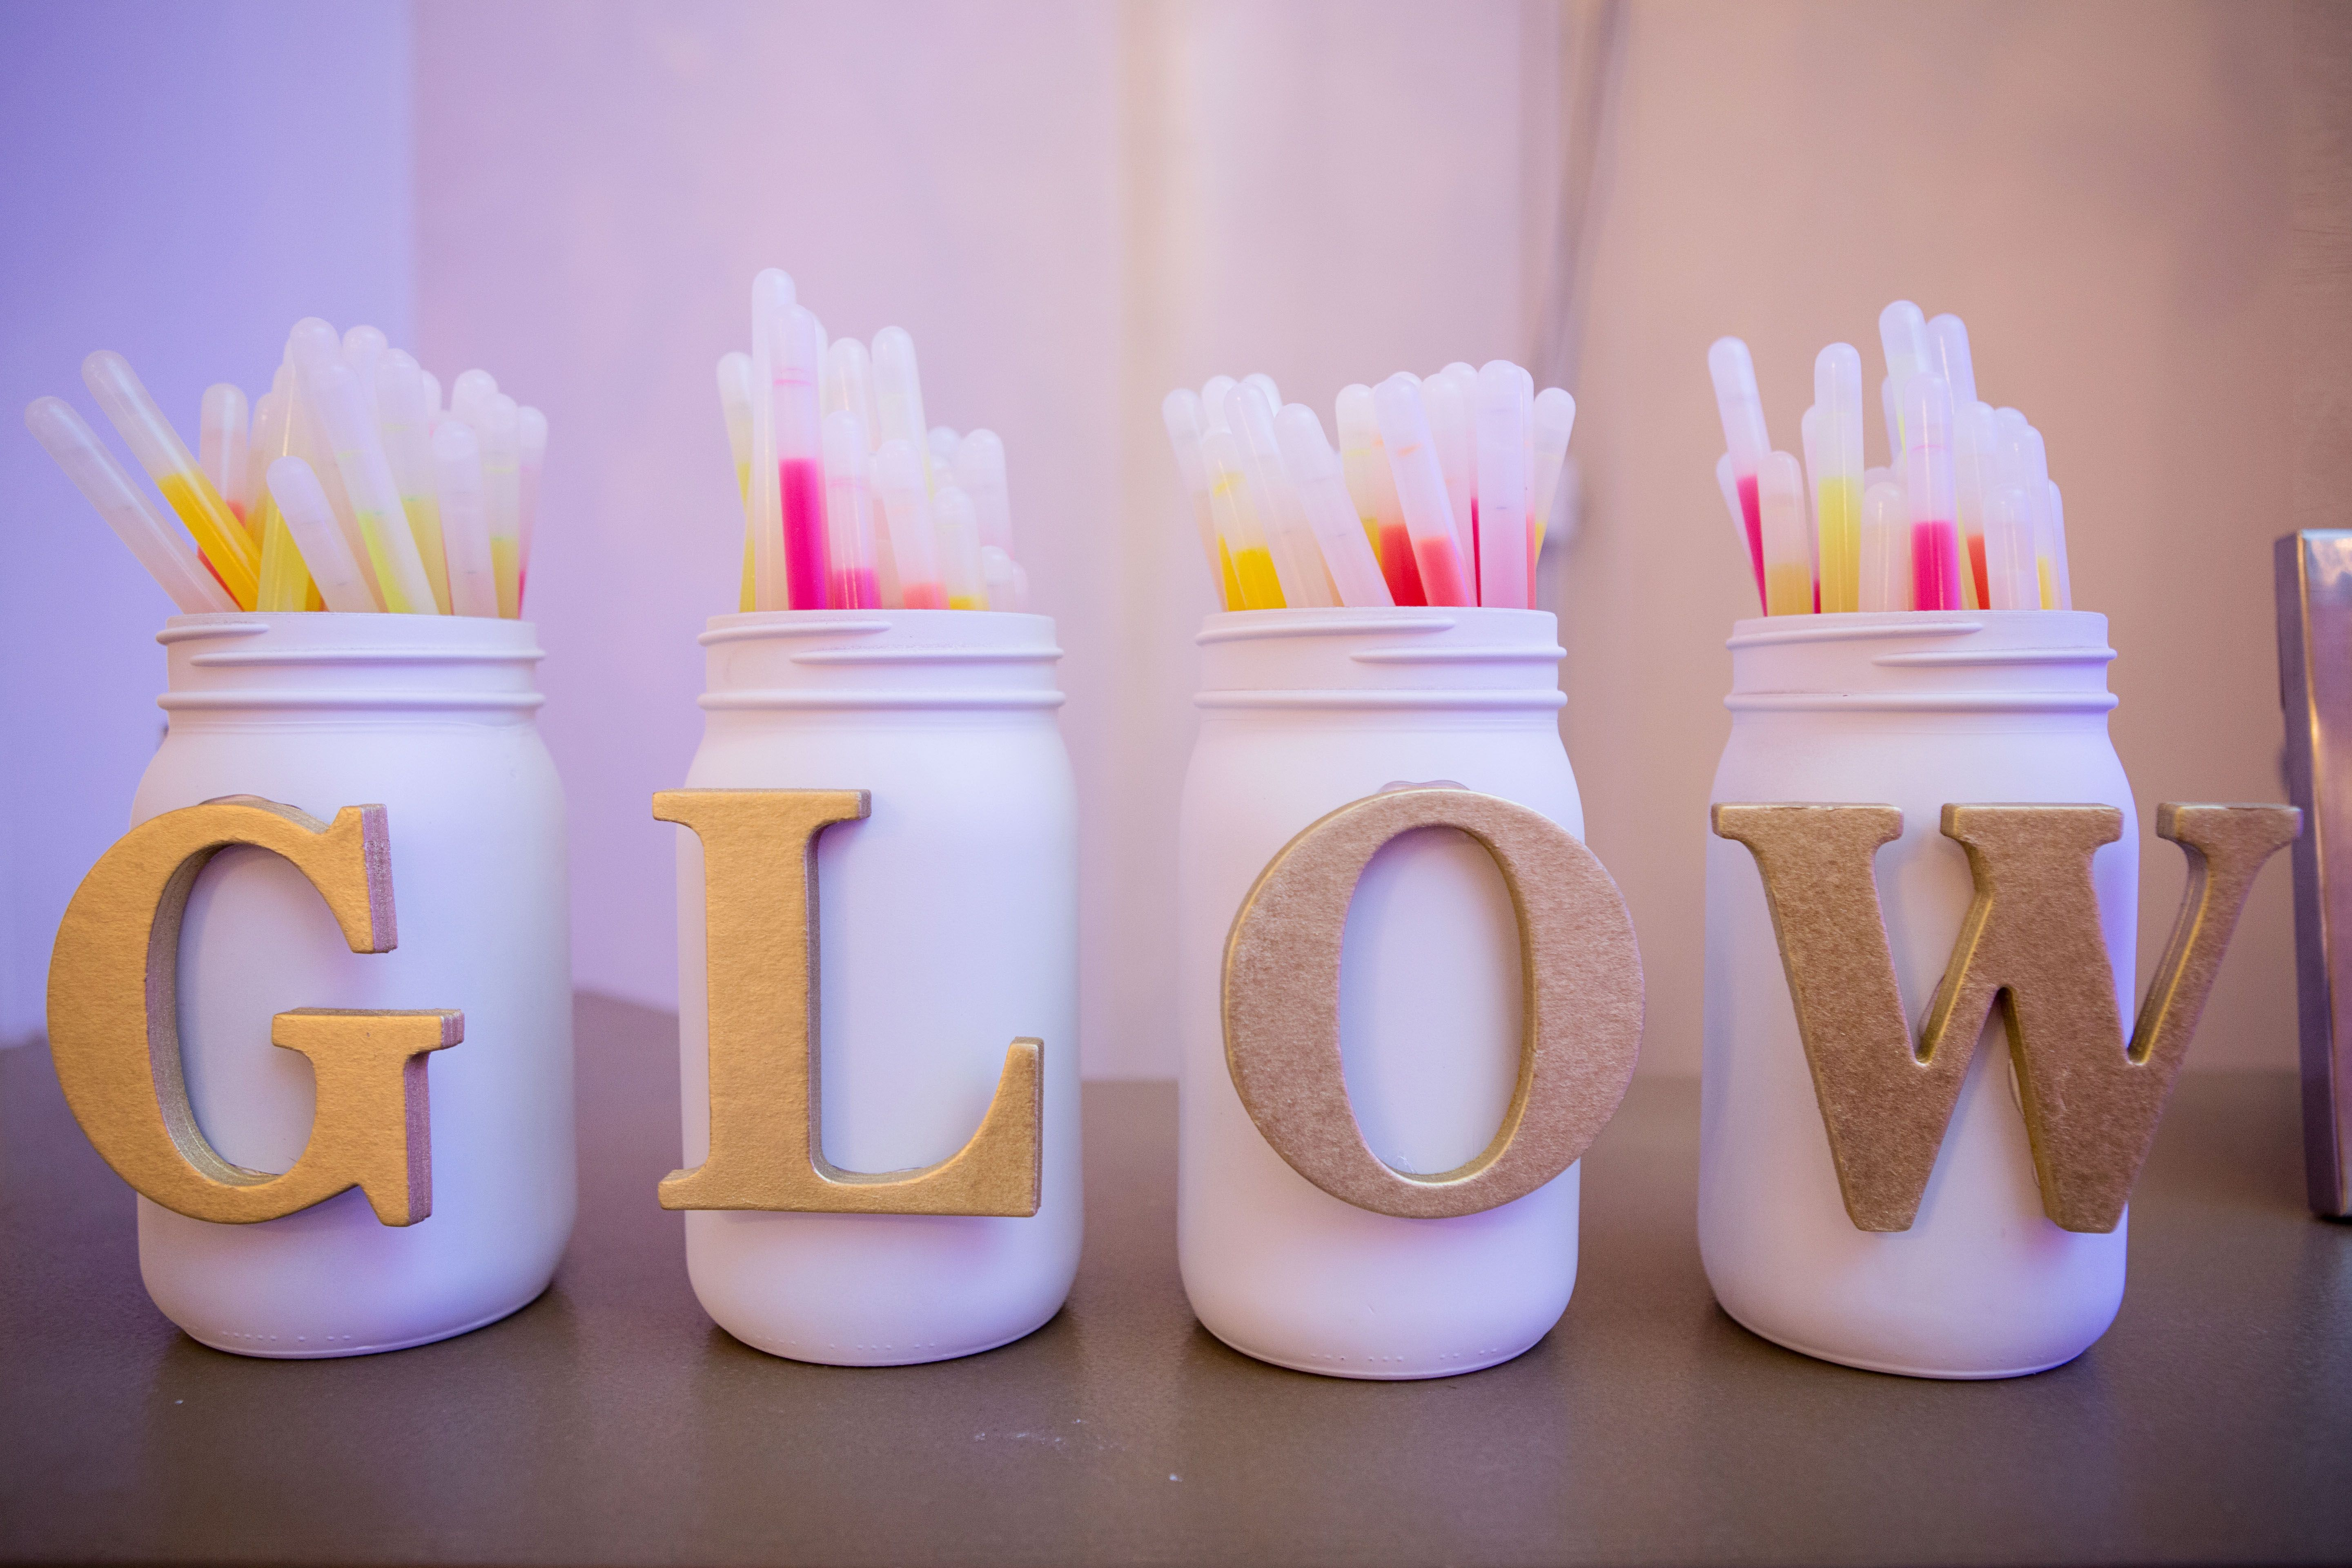 Glow sticks for wedding reception decorate containers